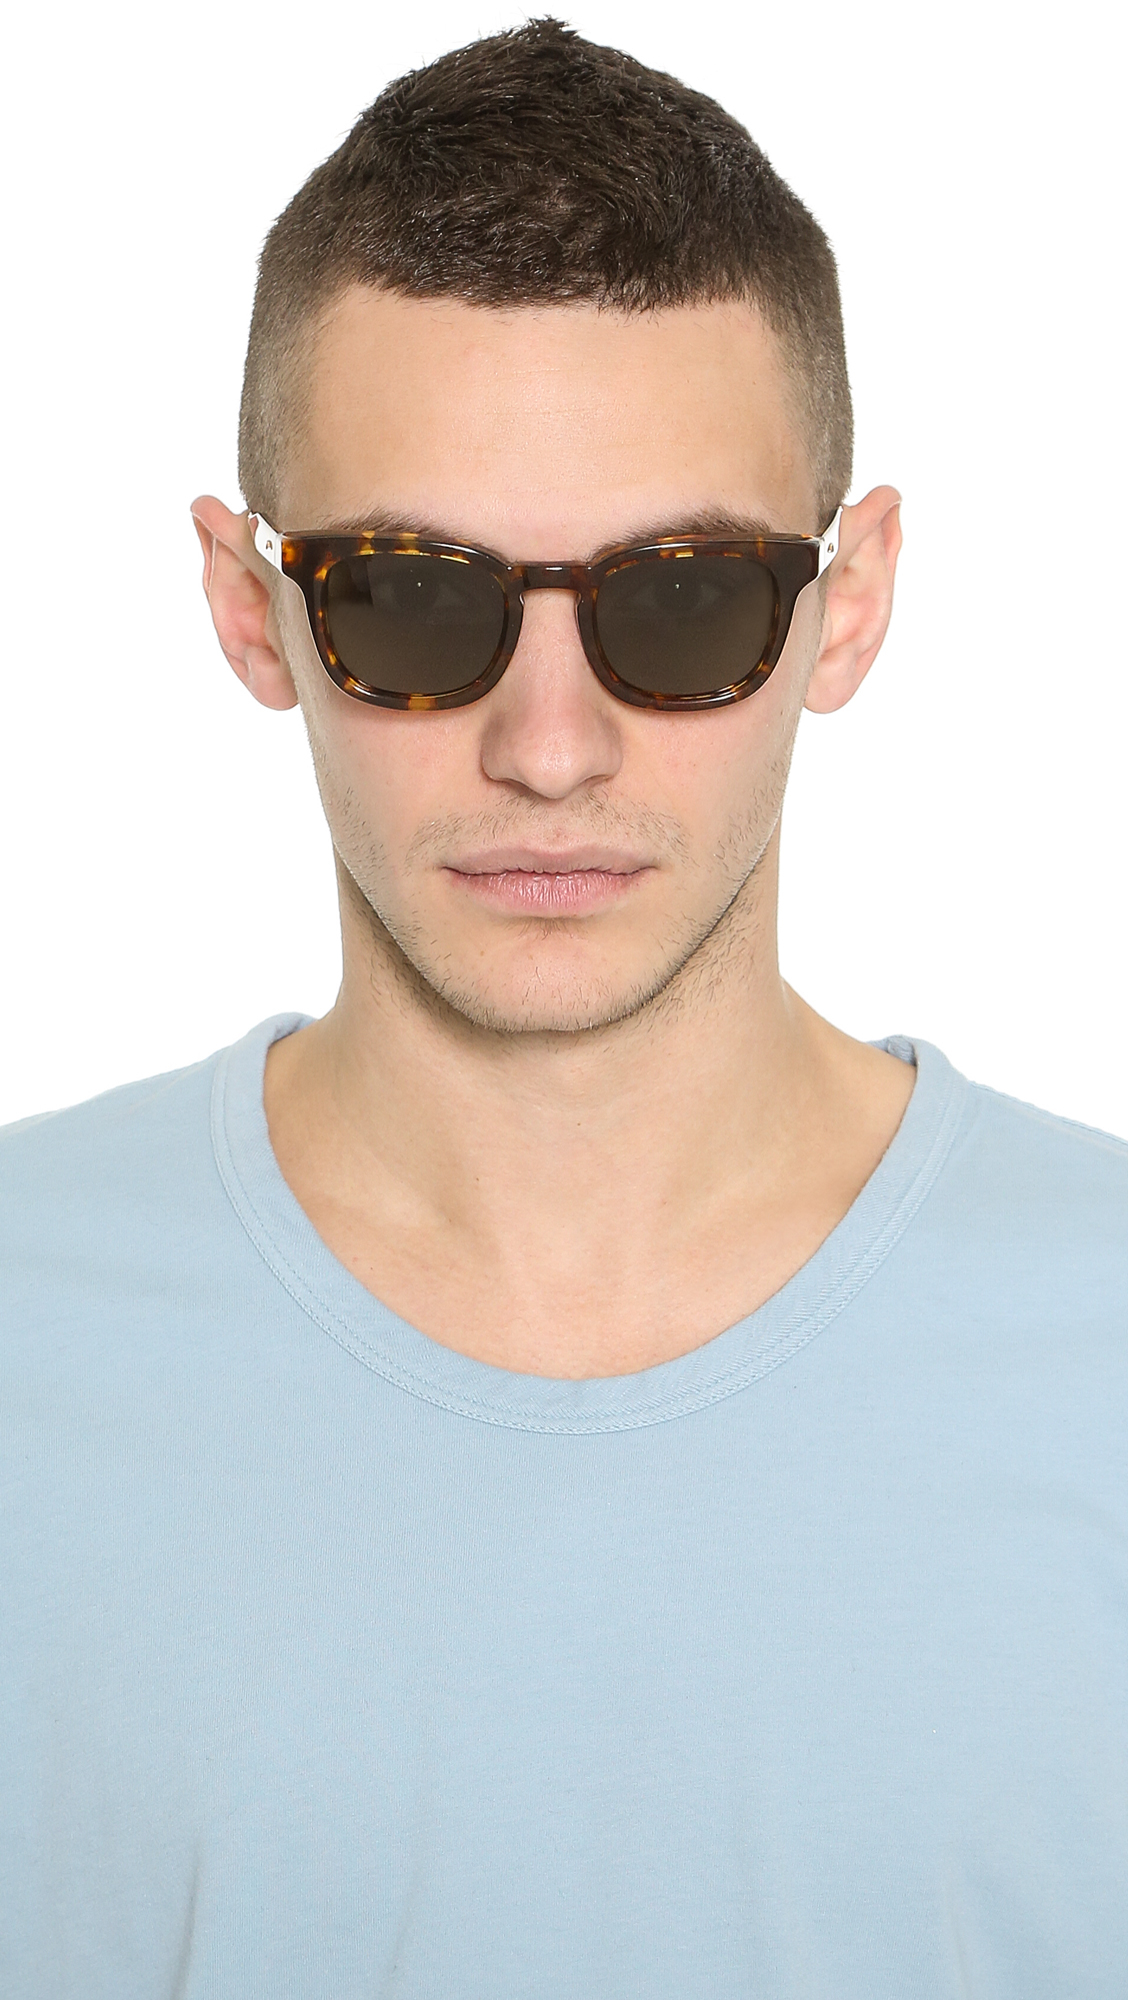 a8c5fb214d Lyst - Oliver Peoples Cabrillo Sunglasses in Brown for Men